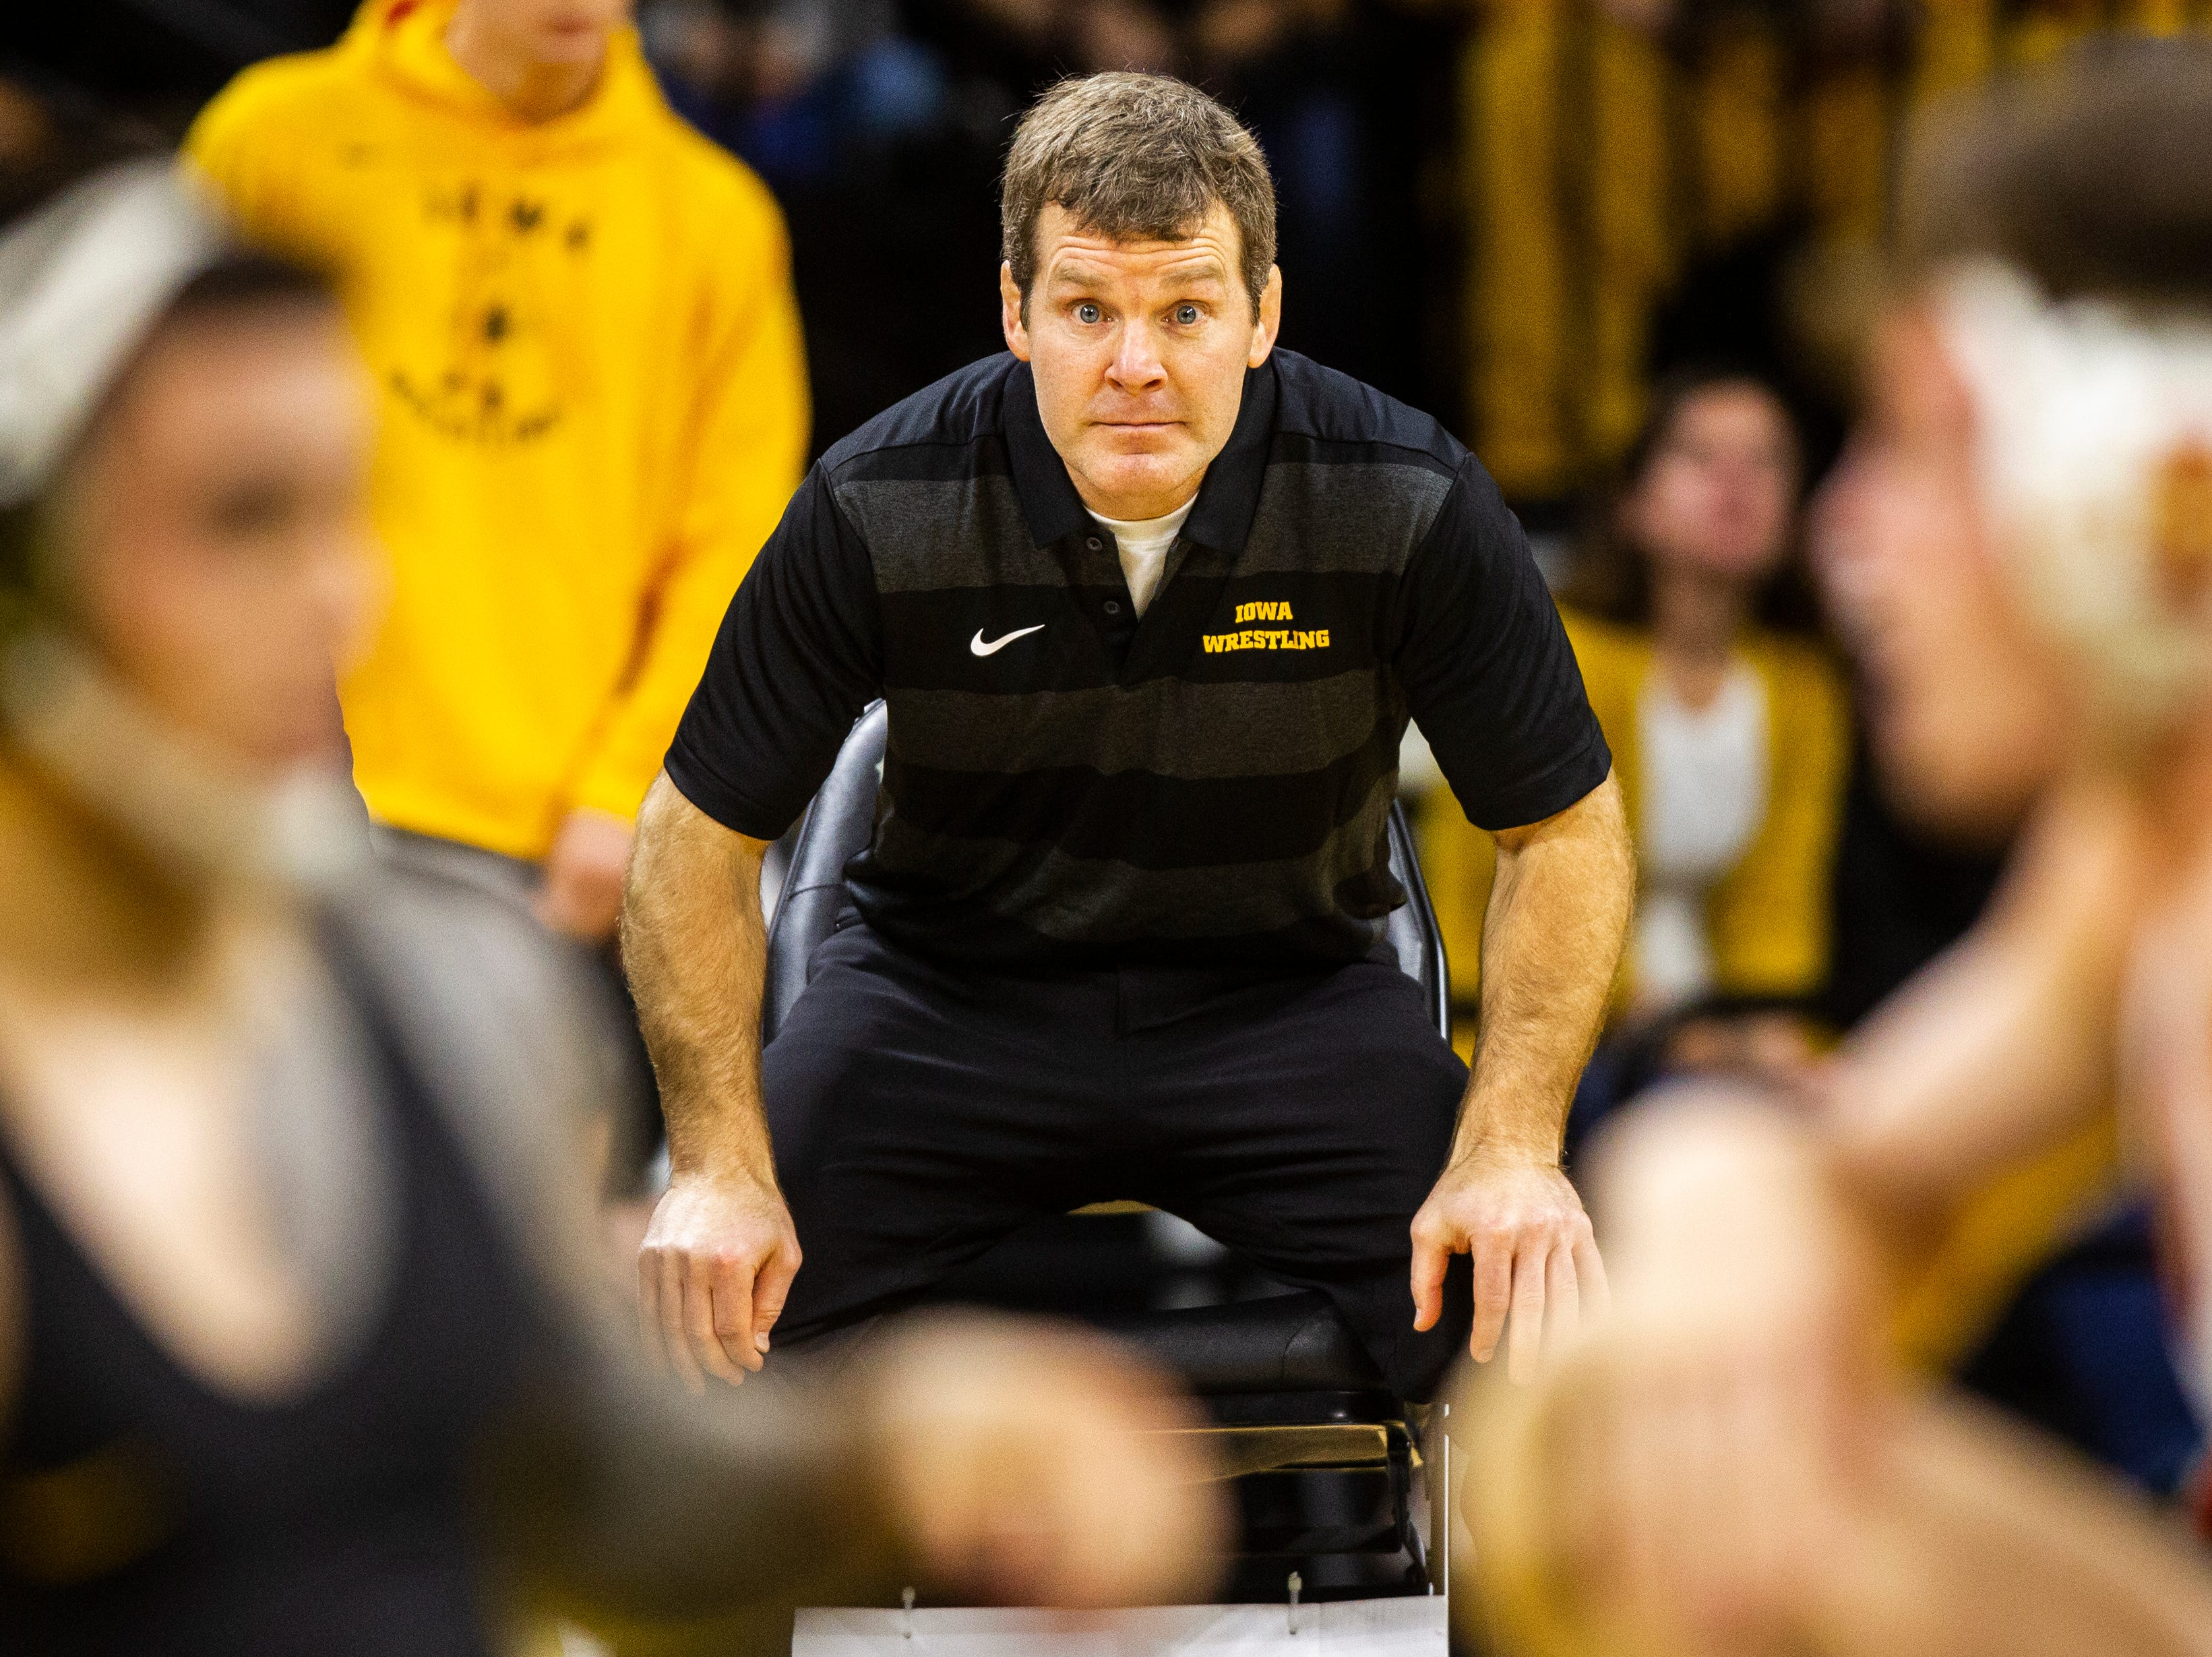 Iowa head coach Tom Brands looks on while Iowa's Pat Lugo wrestles Iowa State's Jarrett Degen at 149 during a NCAA Cy-Hawk series wrestling dual on Saturday, Dec. 1, 2018, at Carver-Hawkeye Arena in Iowa City.